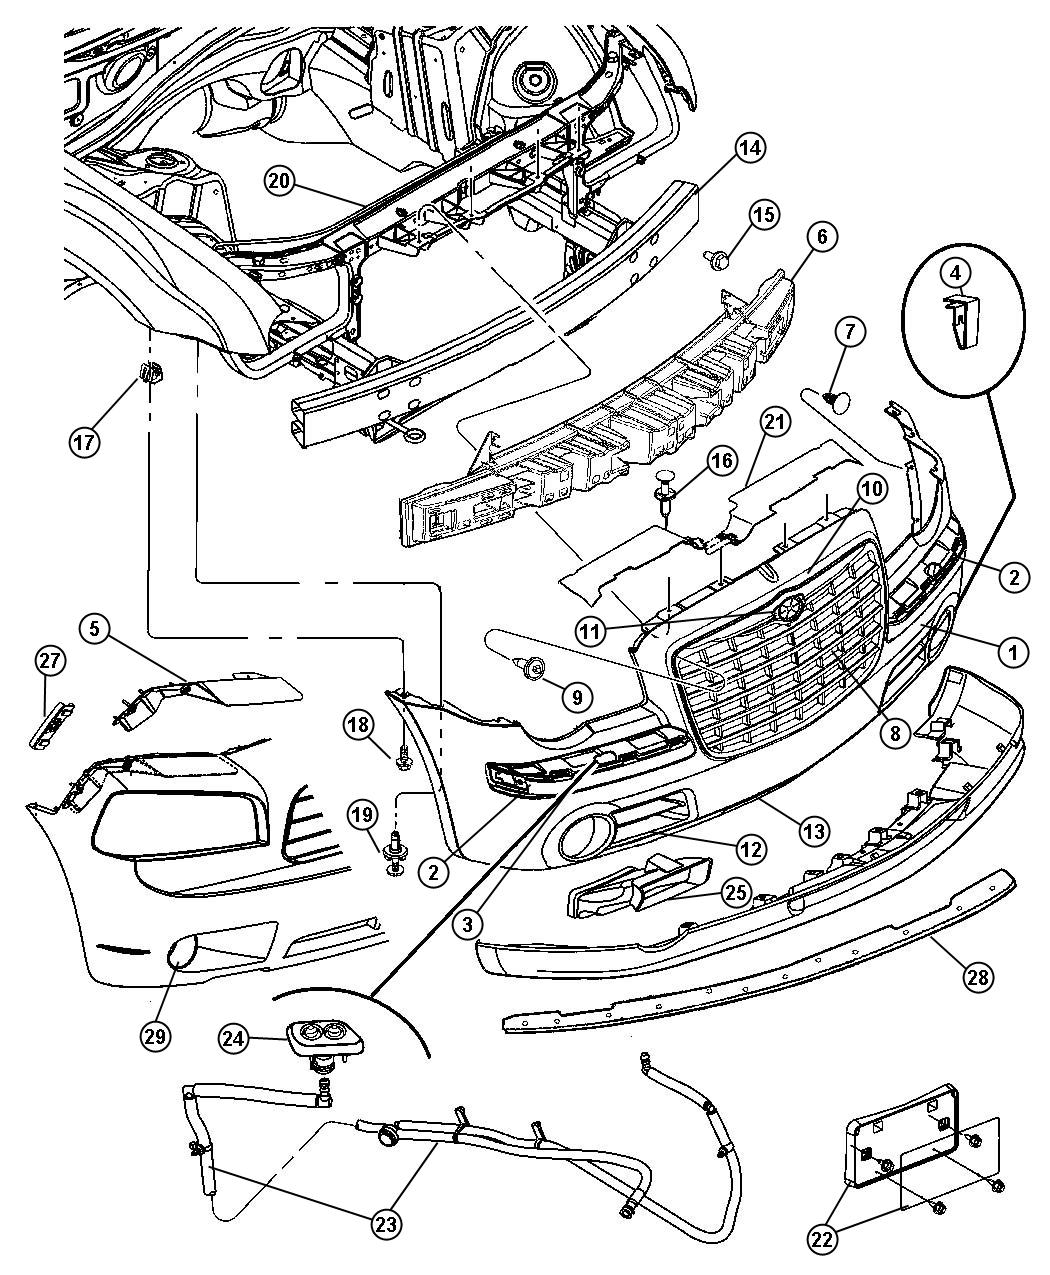 hight resolution of chrysler town and country parts diagram car interior design diagram of courtroom diagram of county water